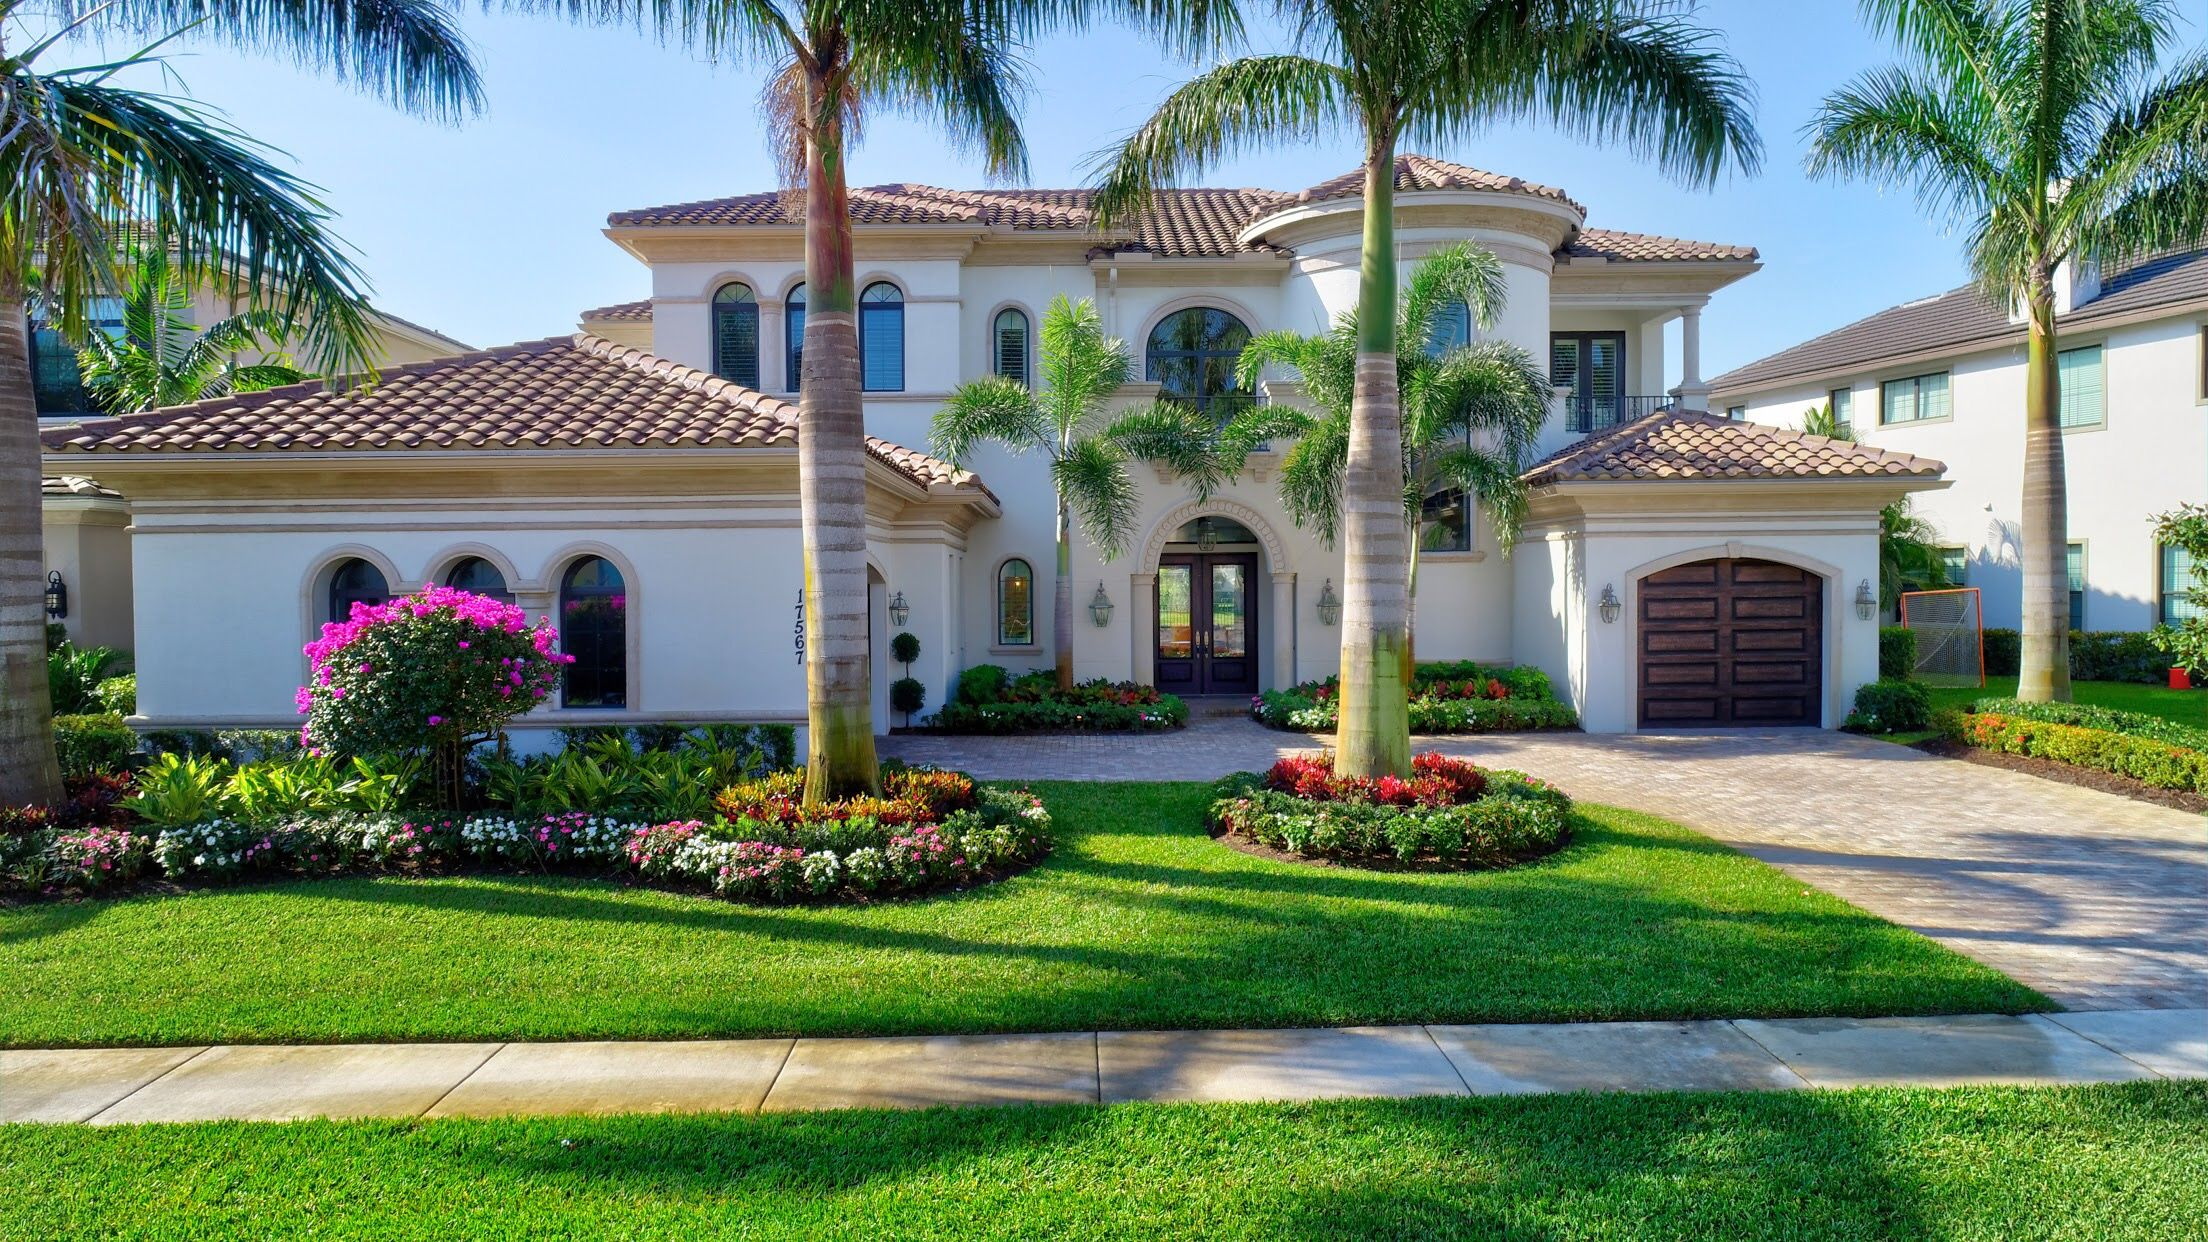 Pin By The Brilliant Team Nikki Klein On Exterior Home Design Front Yard Landscaping Design Luxury Landscaping Front Yard Landscaping